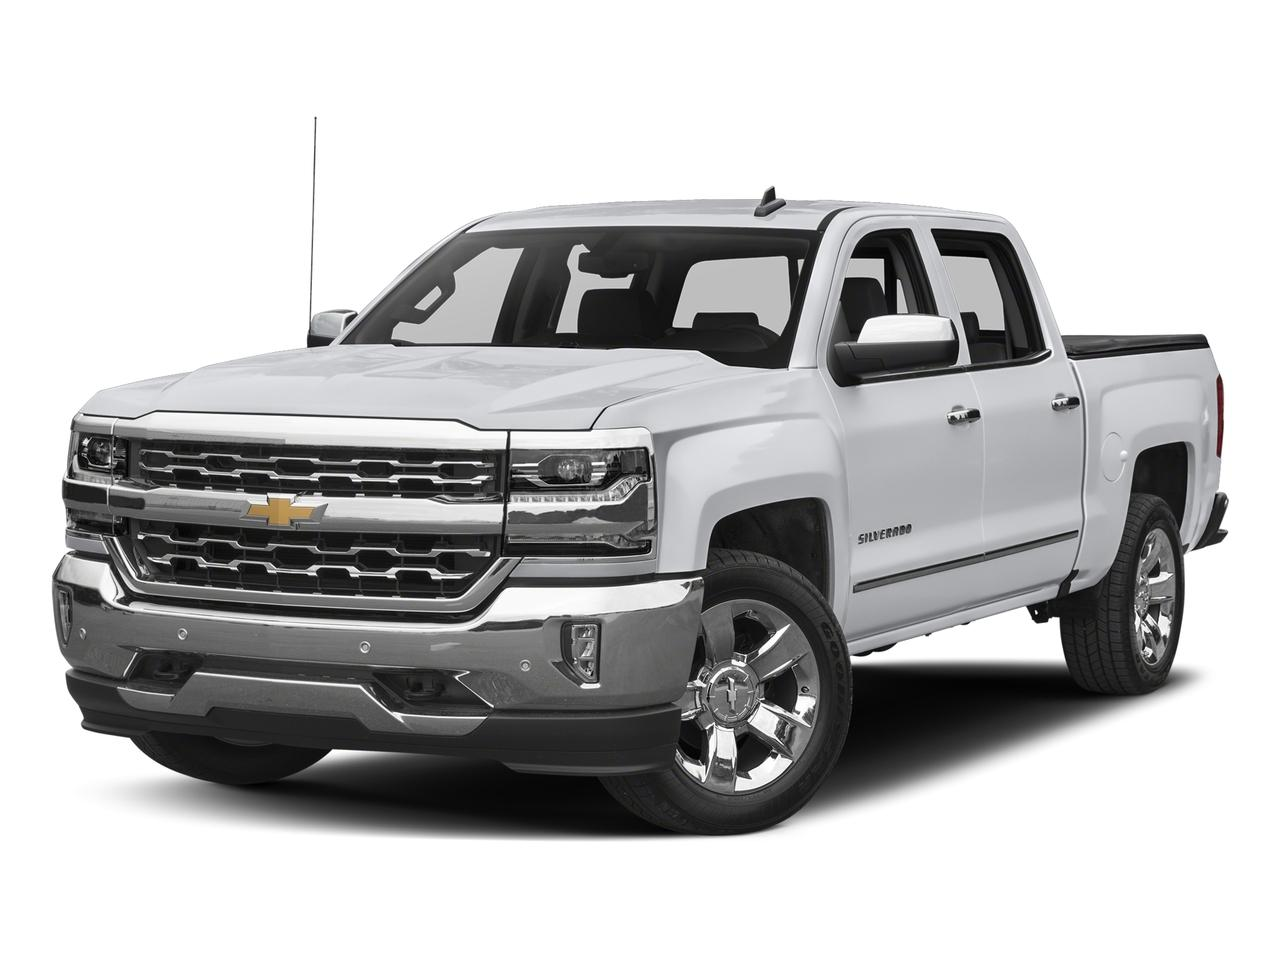 2018 Chevrolet Silverado 1500 Vehicle Photo in Bowie, MD 20716